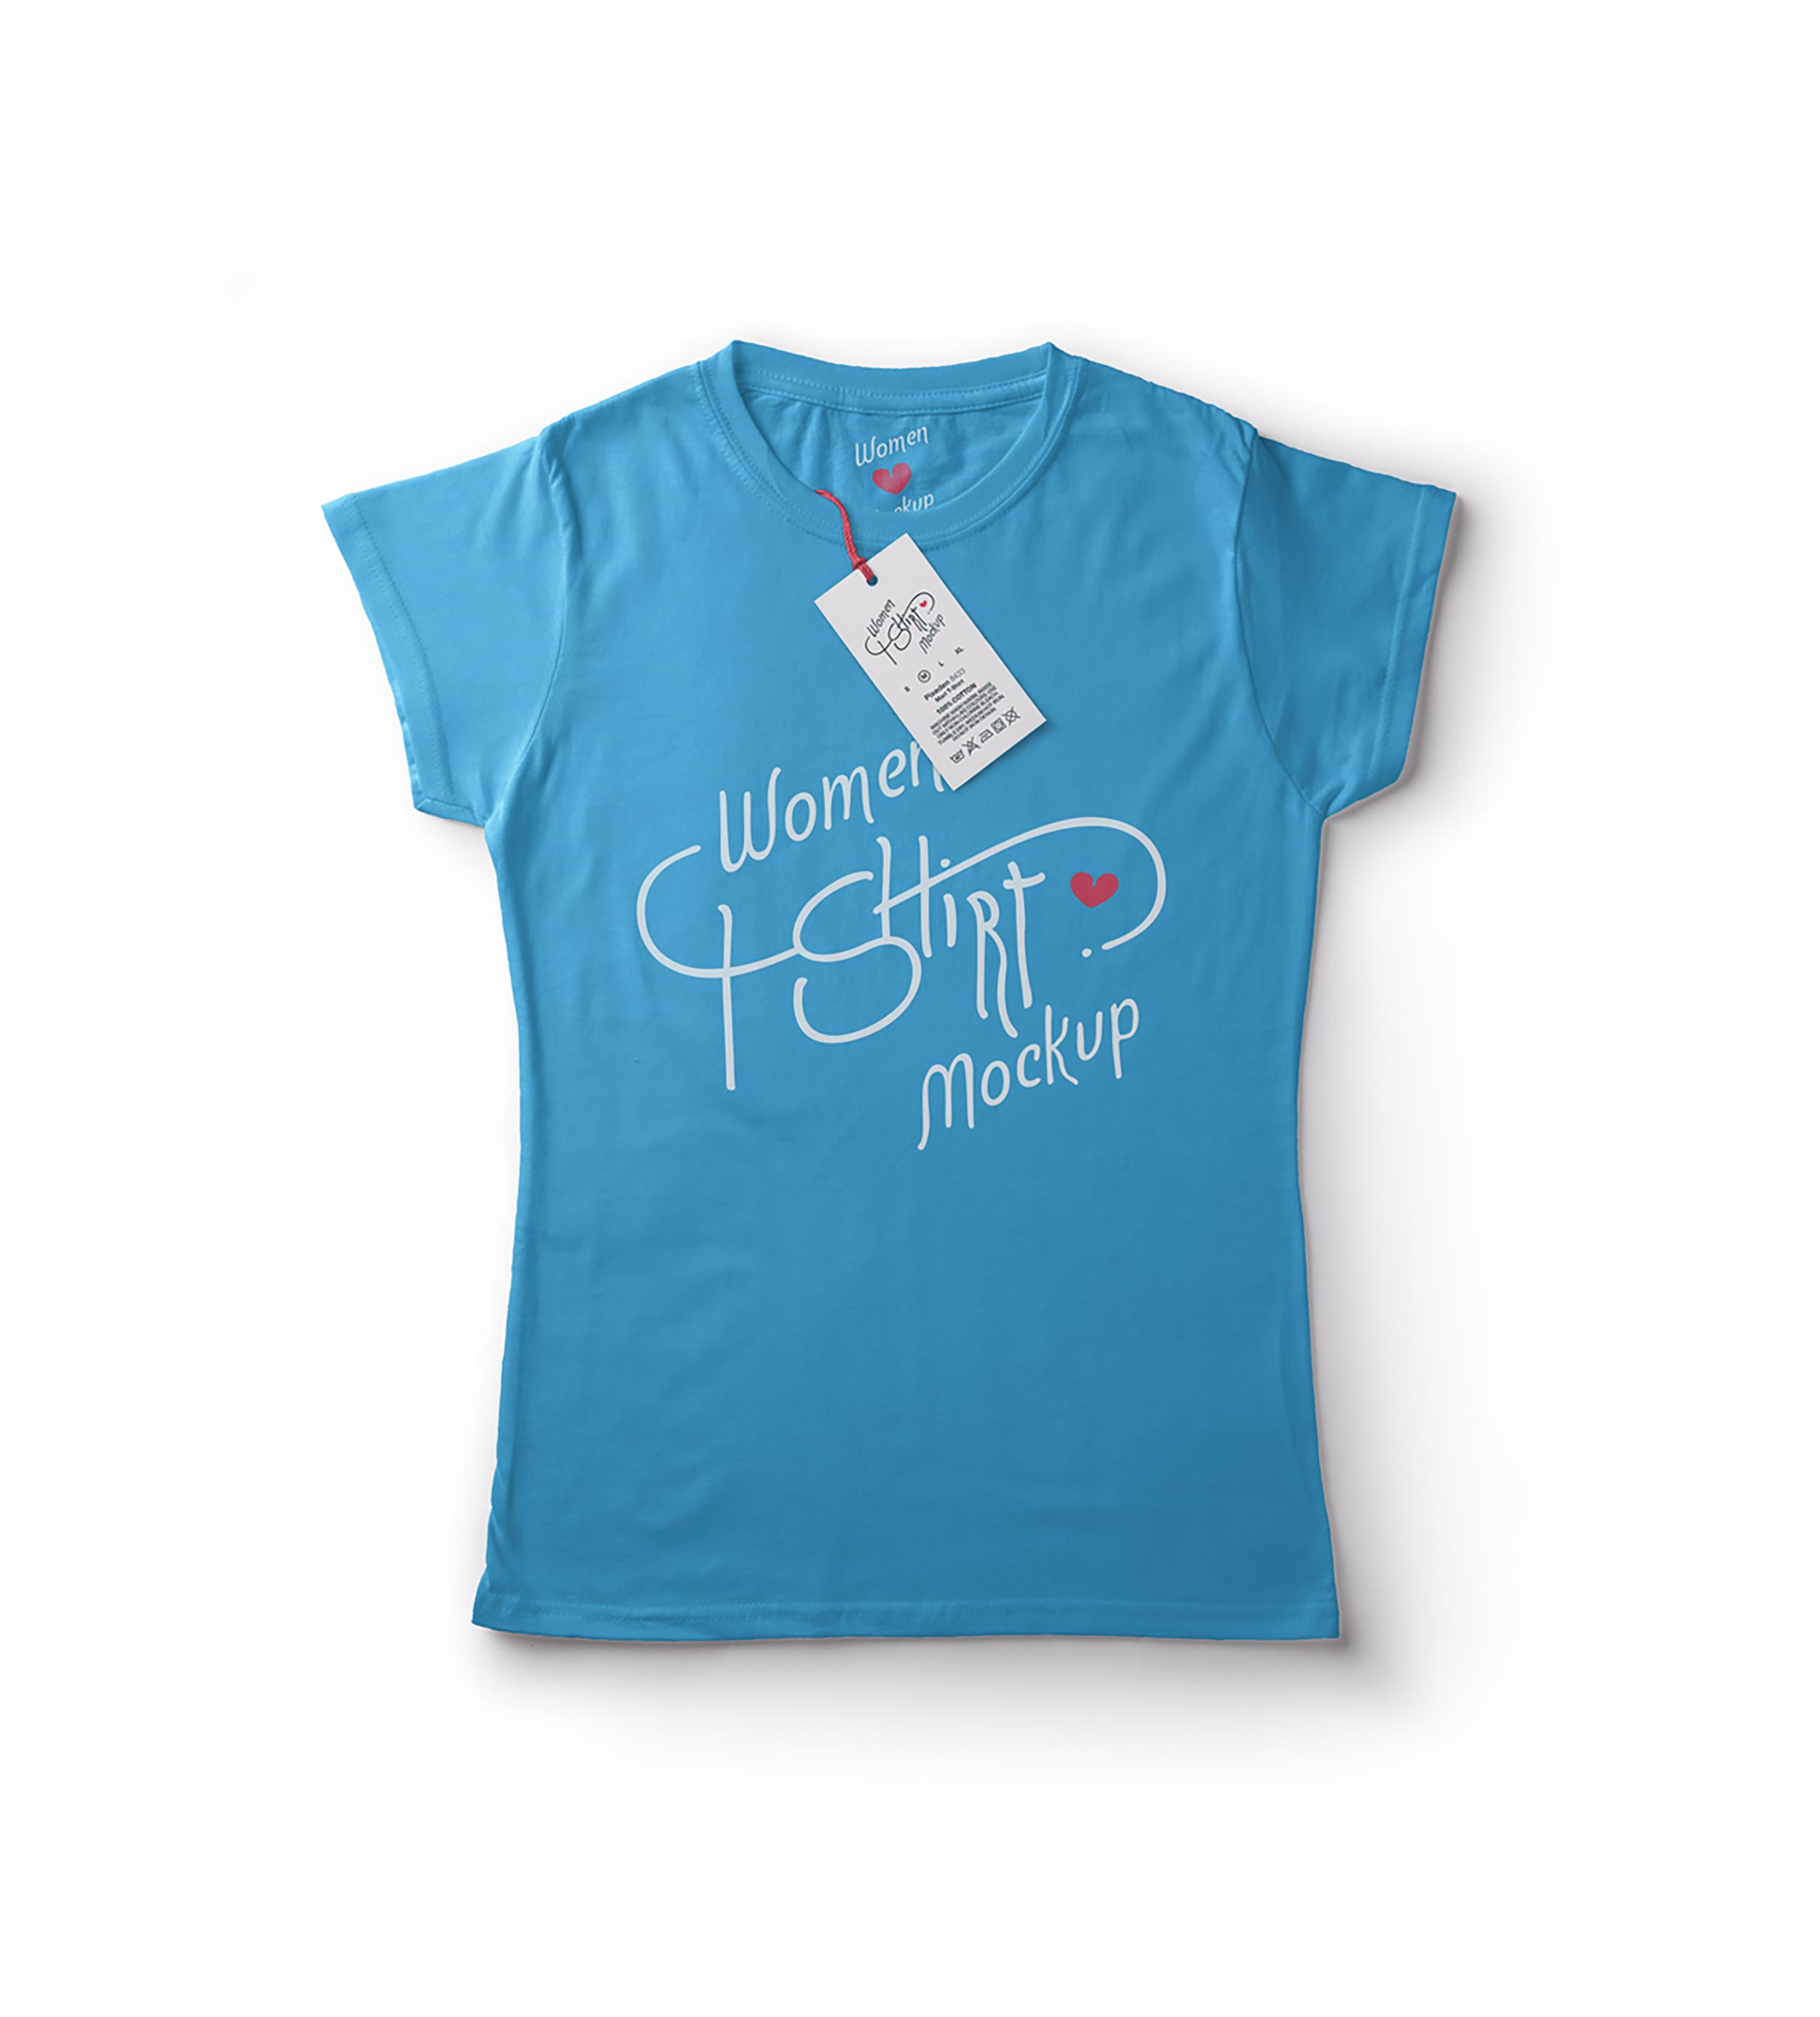 tee shirt women blue